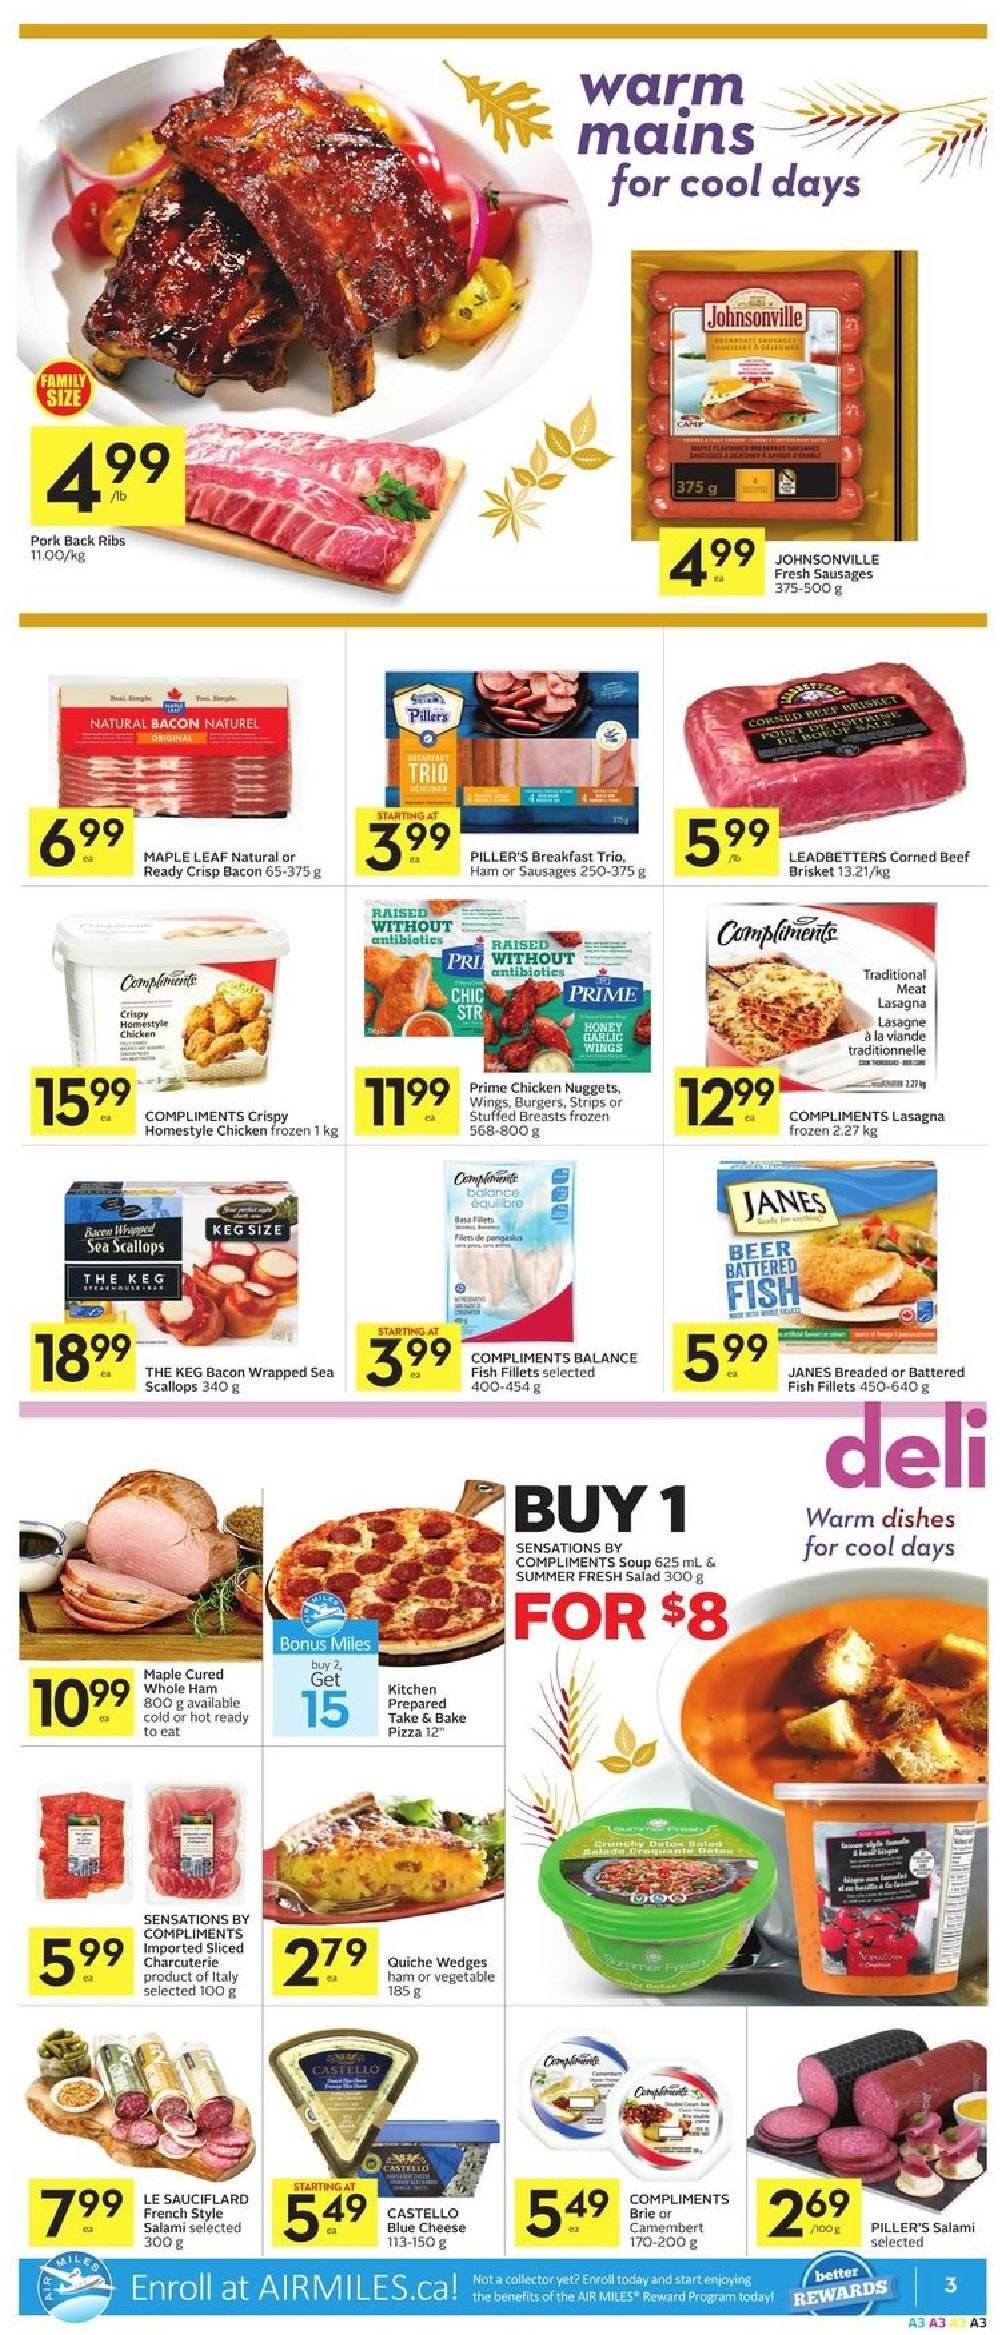 Foodland Flyer  - September 27, 2018 - October 03, 2018. Page 3.